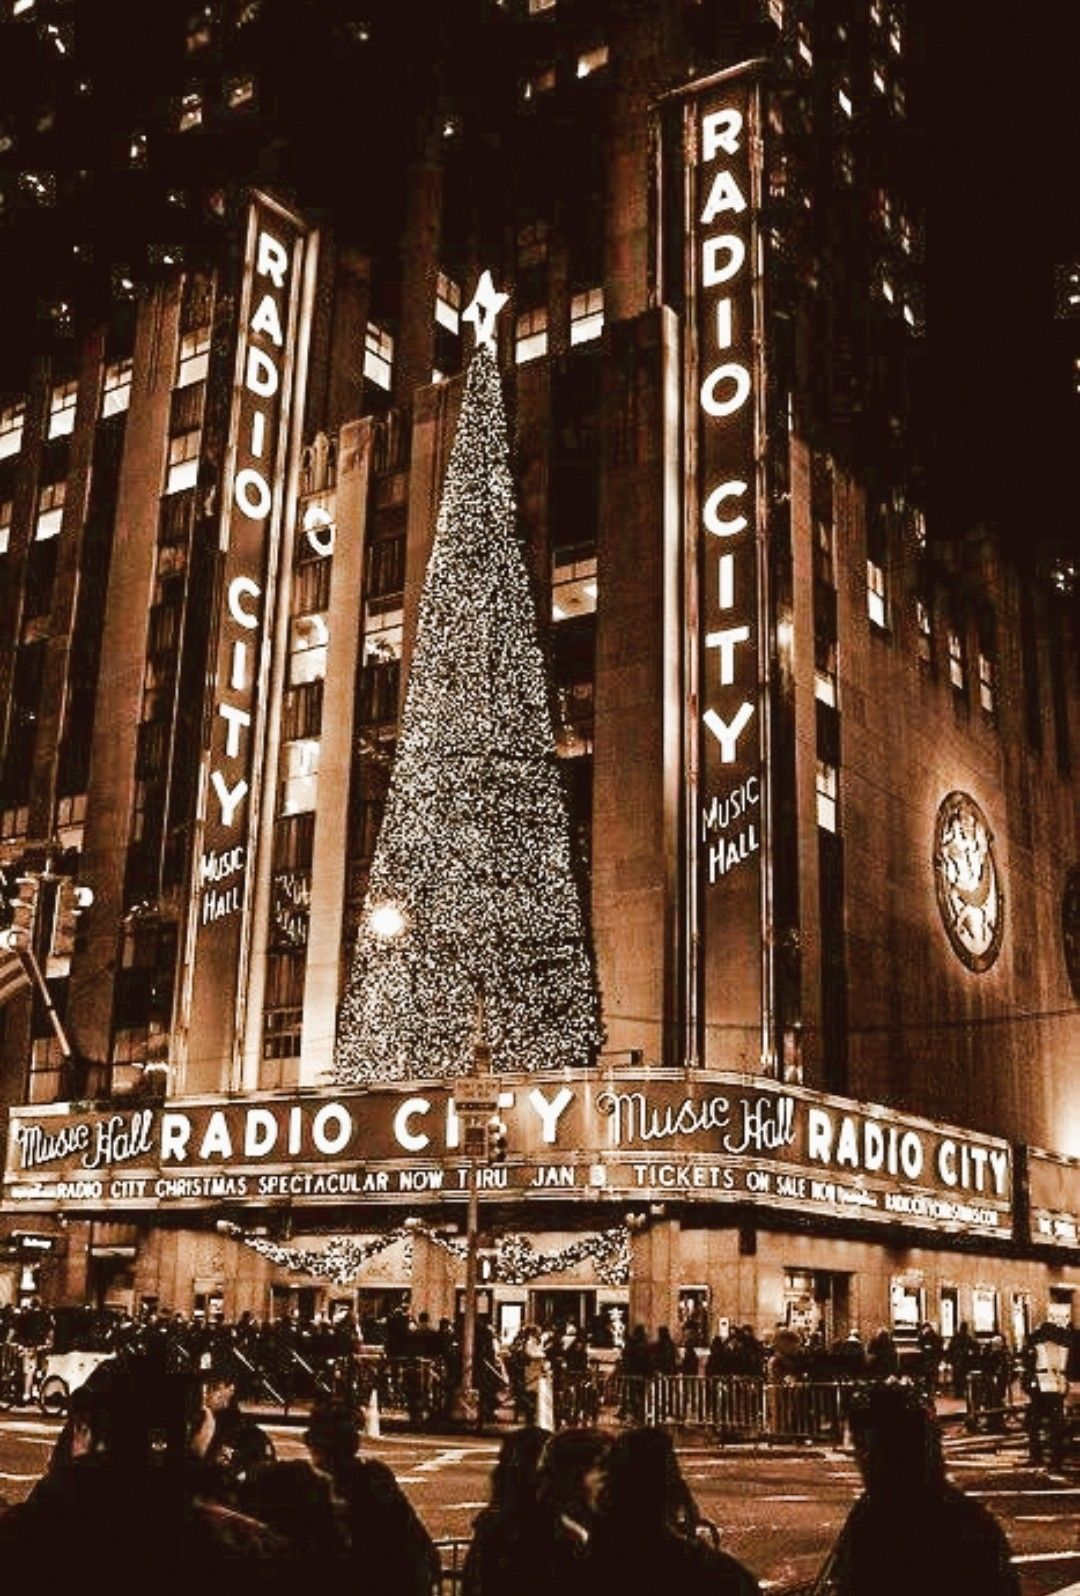 Pin By Avery Brown On Winter In 2020 Nyc Christmas New York Christmas Radio City